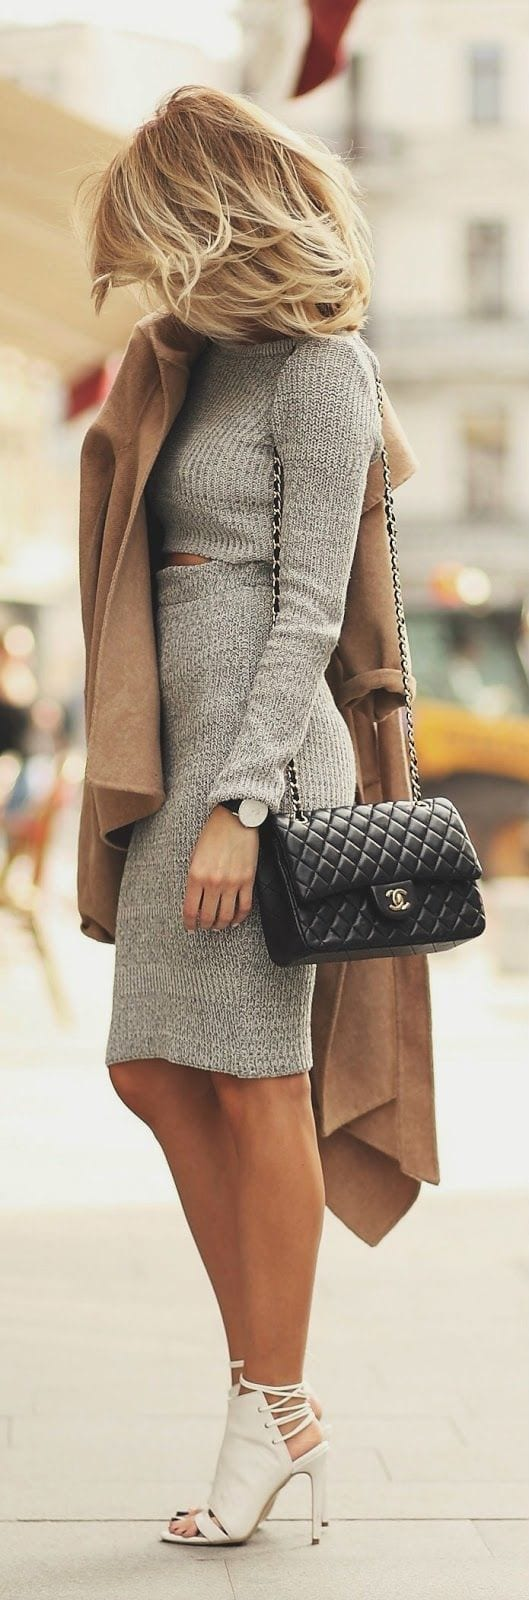 minimalist-outfits-for-winter4 13 Cute Minimalist Outfits for Winters - Minimal Fashion Style